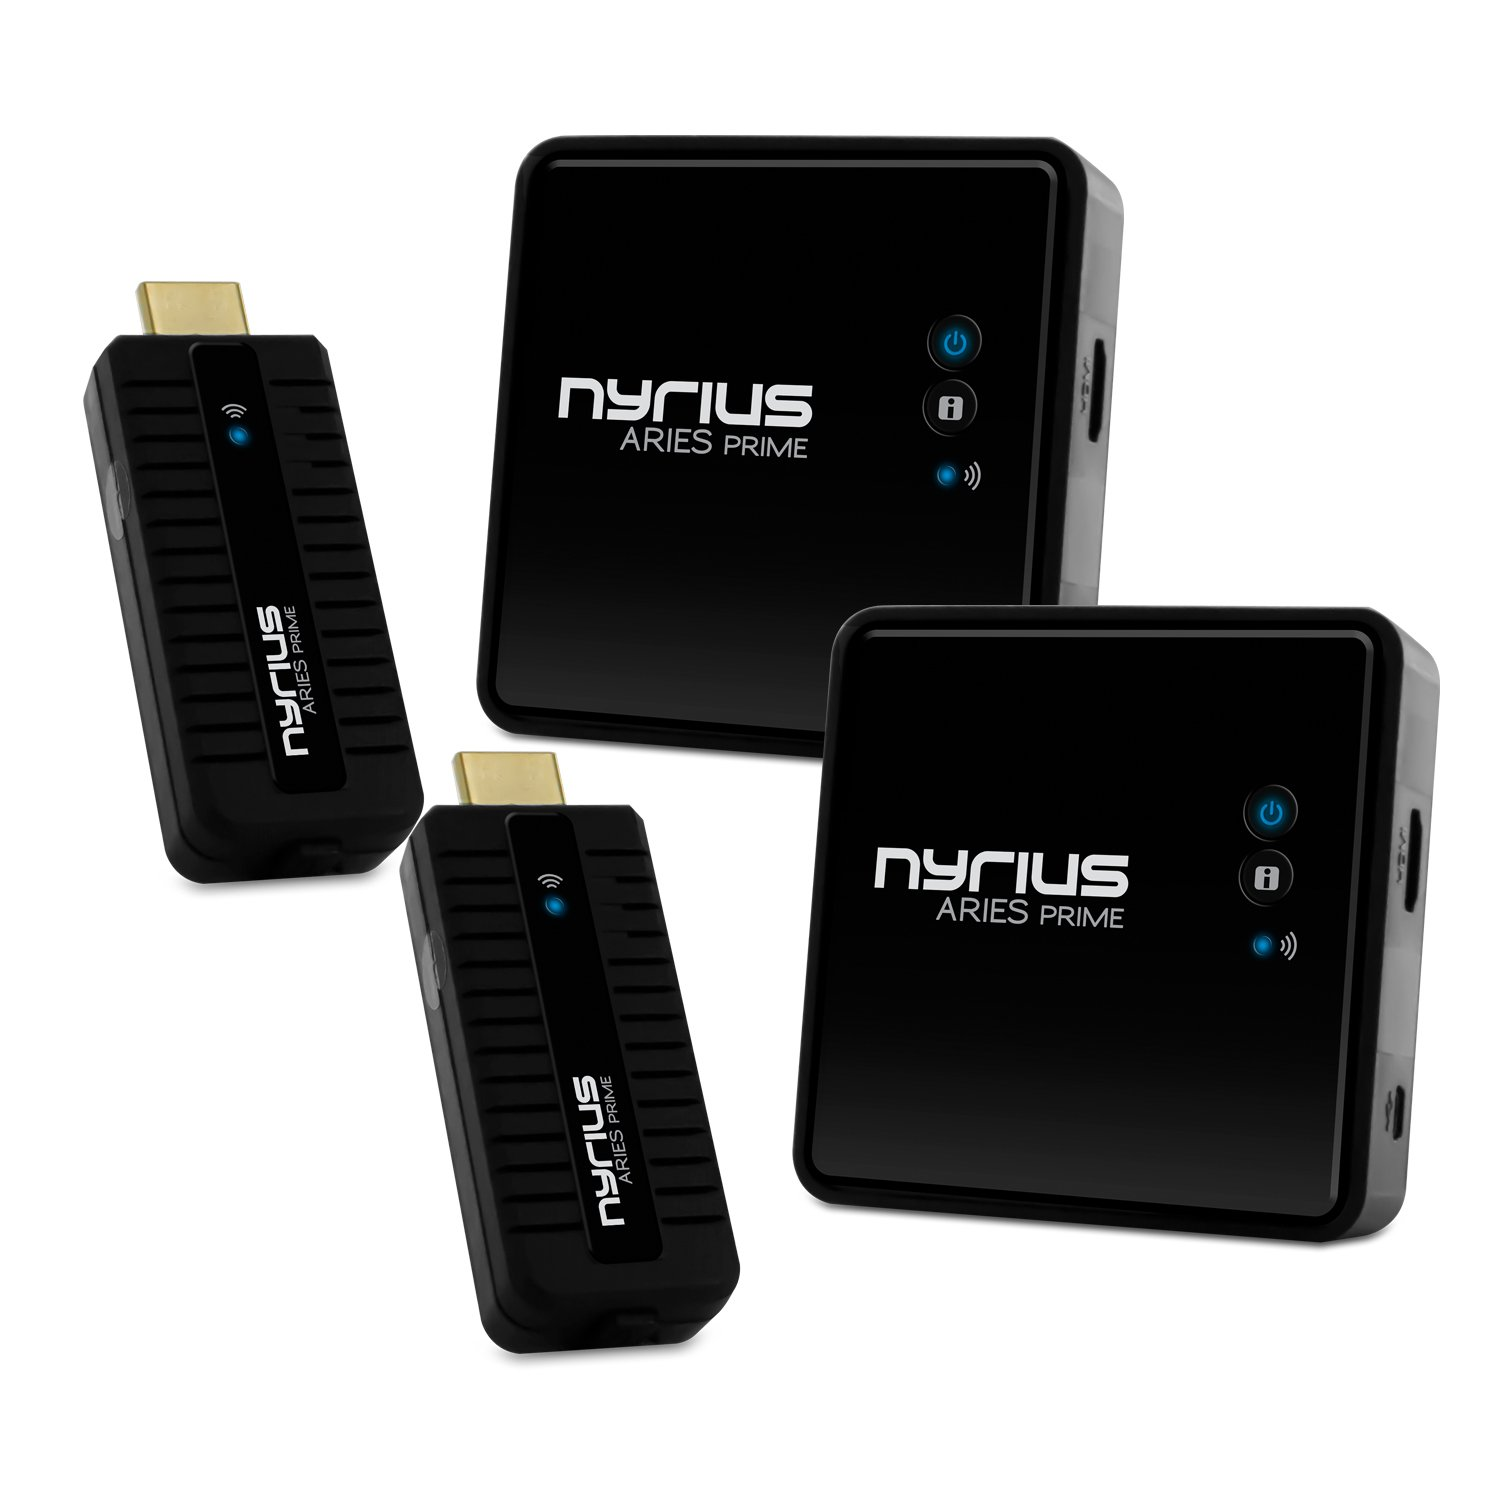 Nyrius Aries Prime Wireless Video HDMI Transmitter & Receiver for Streaming HD 1080p 3D Video & Digital Audio from Laptop, PC, Cable, Netflix, YouTube, PS4, Xbox One to HDTV - NPCS549 (Pack of 2)